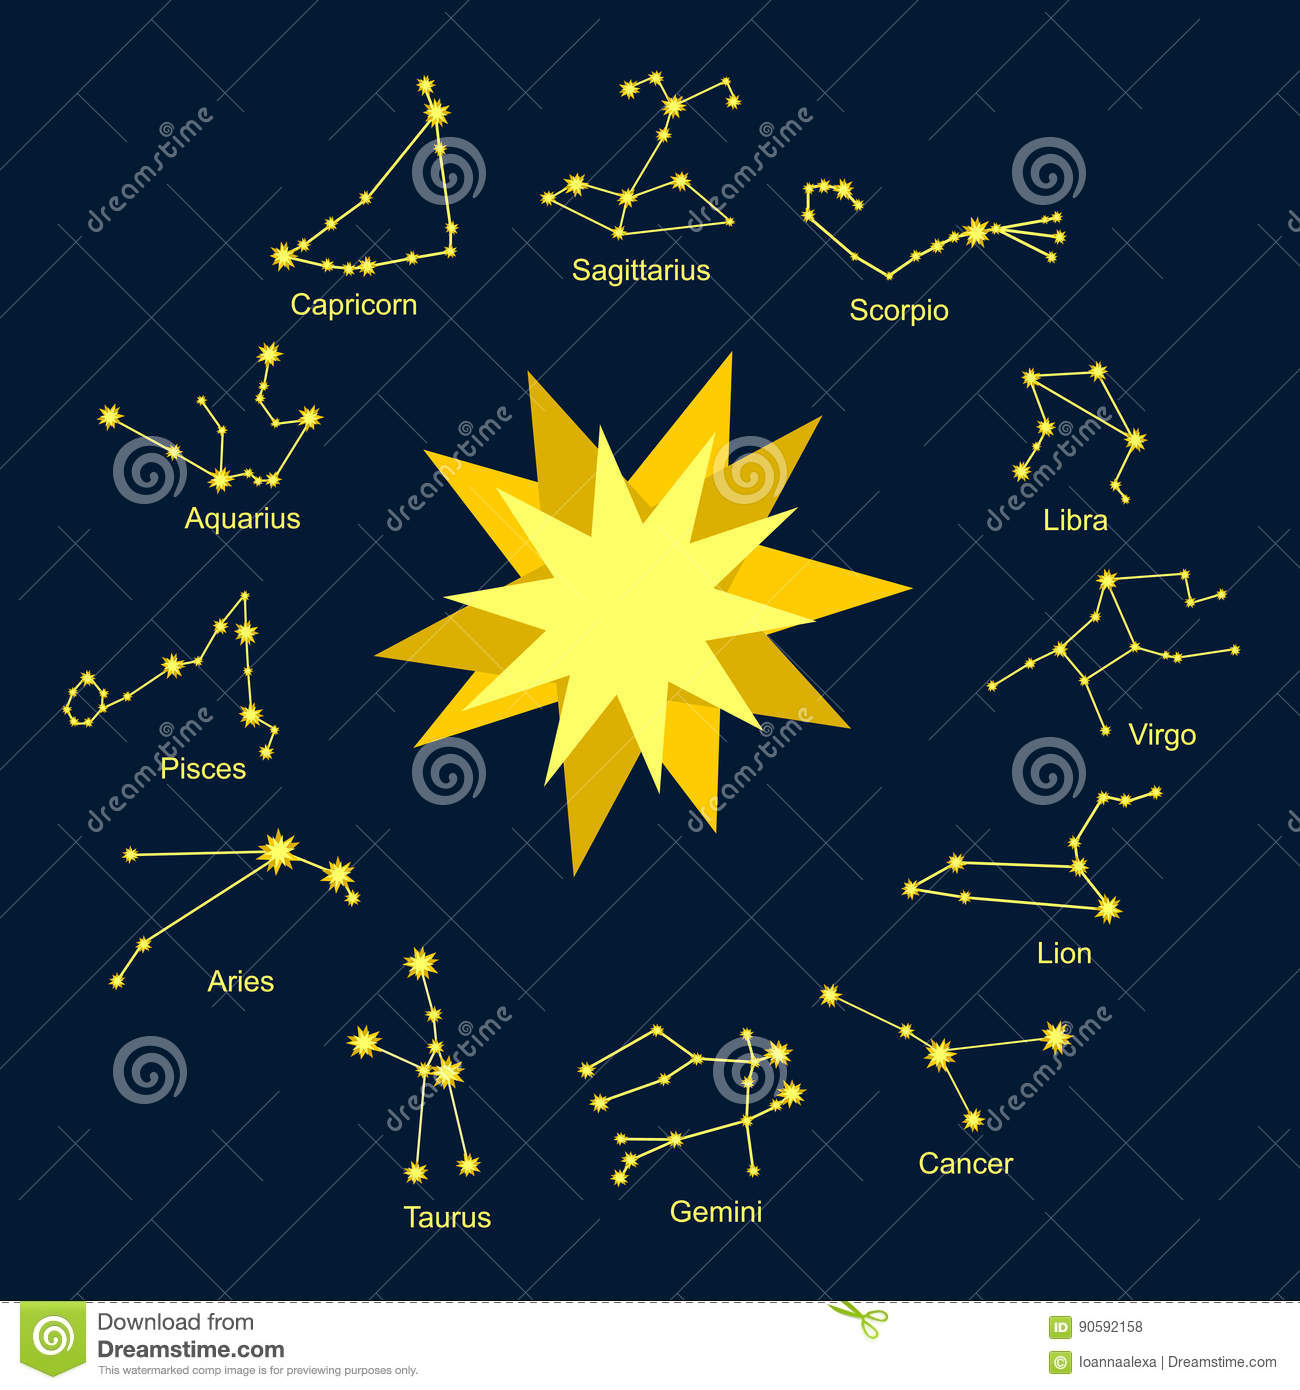 Find complete information about the Taurus zodiac dates, compatibility, personality traits and.